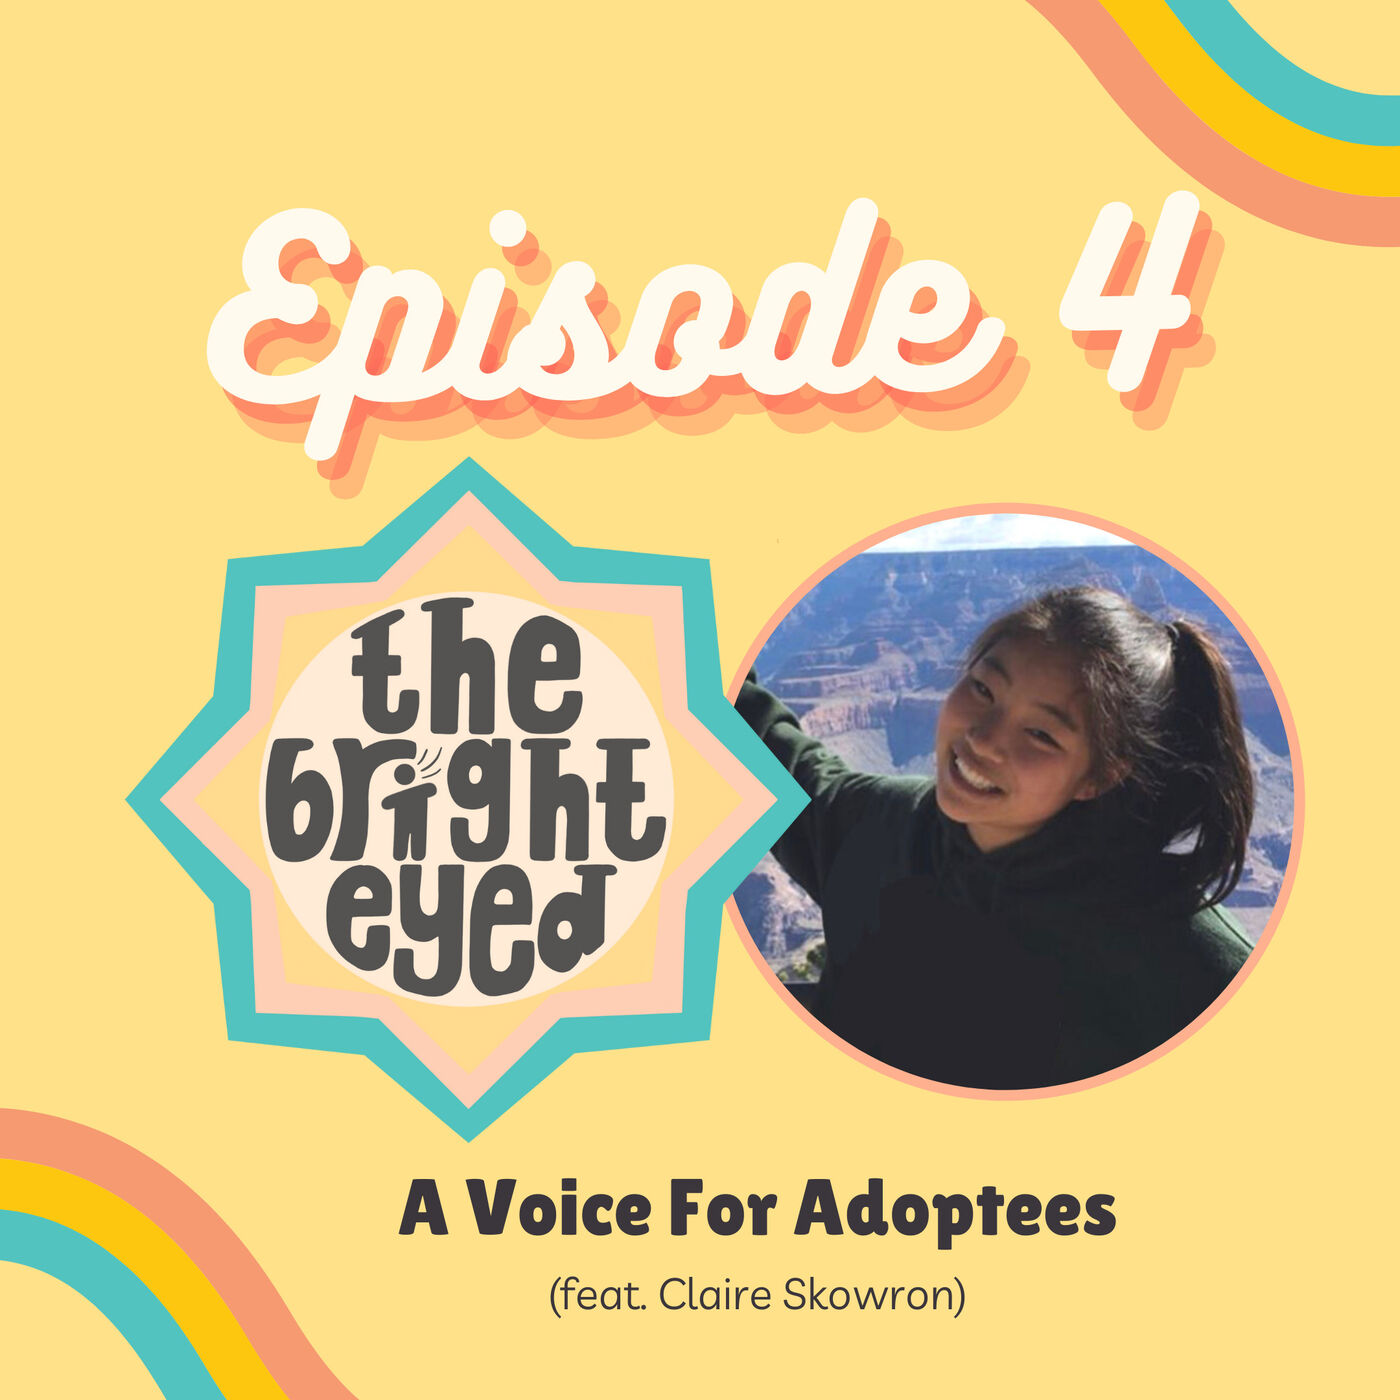 A Voice for Adoptees (feat. Claire Skowron)